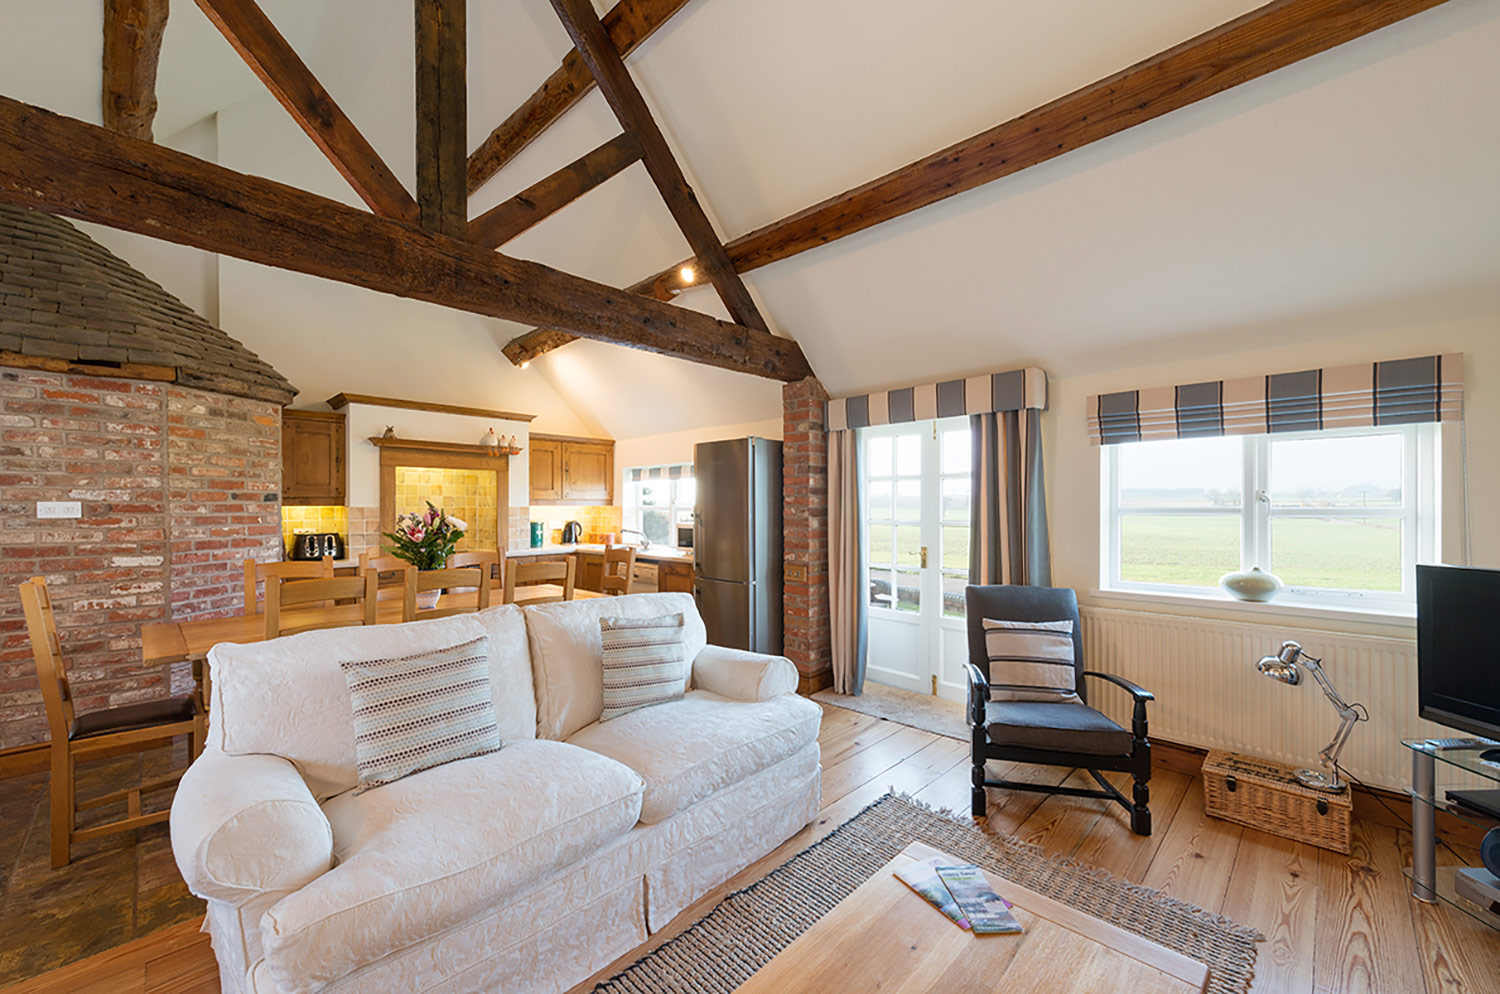 Holiday accommodation for family get togethers and group bookings   Upper Rectory Farm Cottages